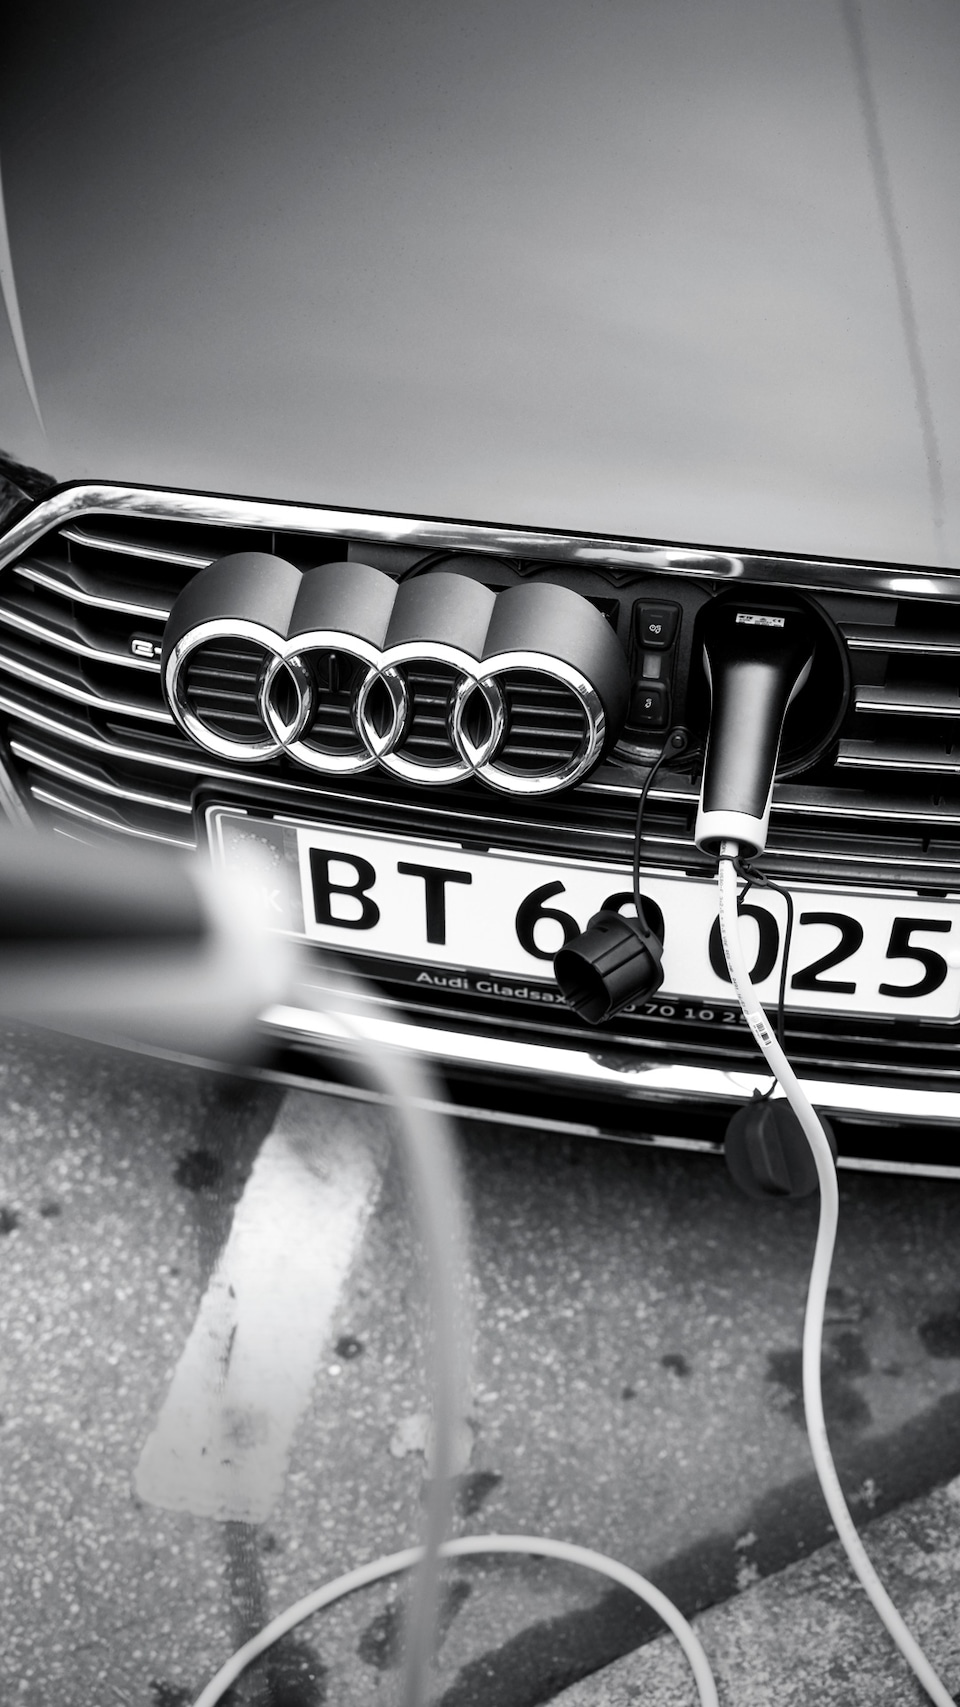 Thanks to the Mode 3 cable, the Audi A3 Sportback e-tron1 can be fully charged at public charging points in around 2.5 hours.